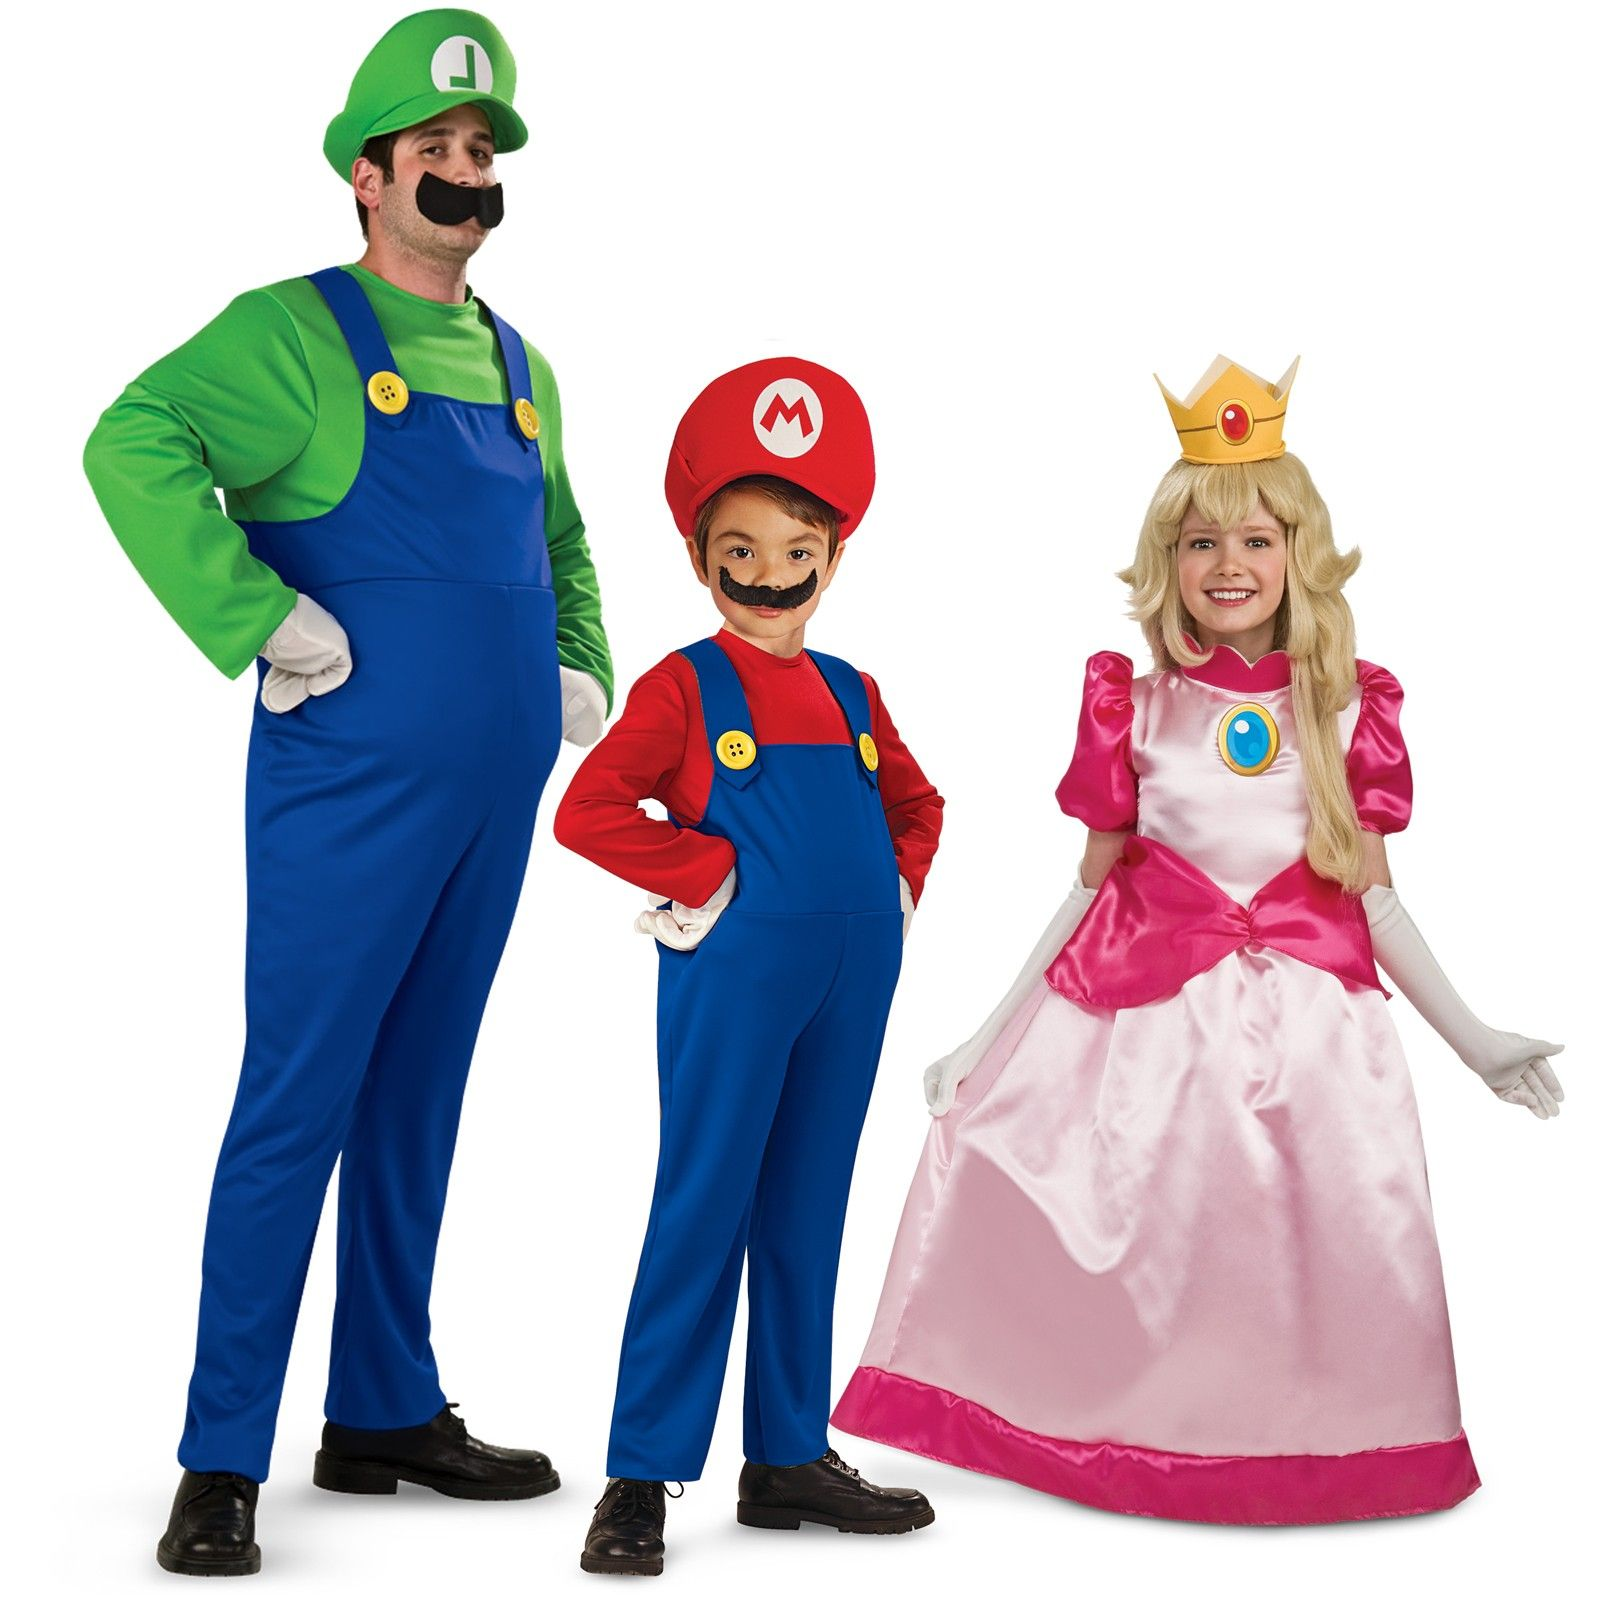 KIDS' COSTUMES & DRESS-UP GROWN-UP COSTUMES GROUP COSTUMES COSTUME ...